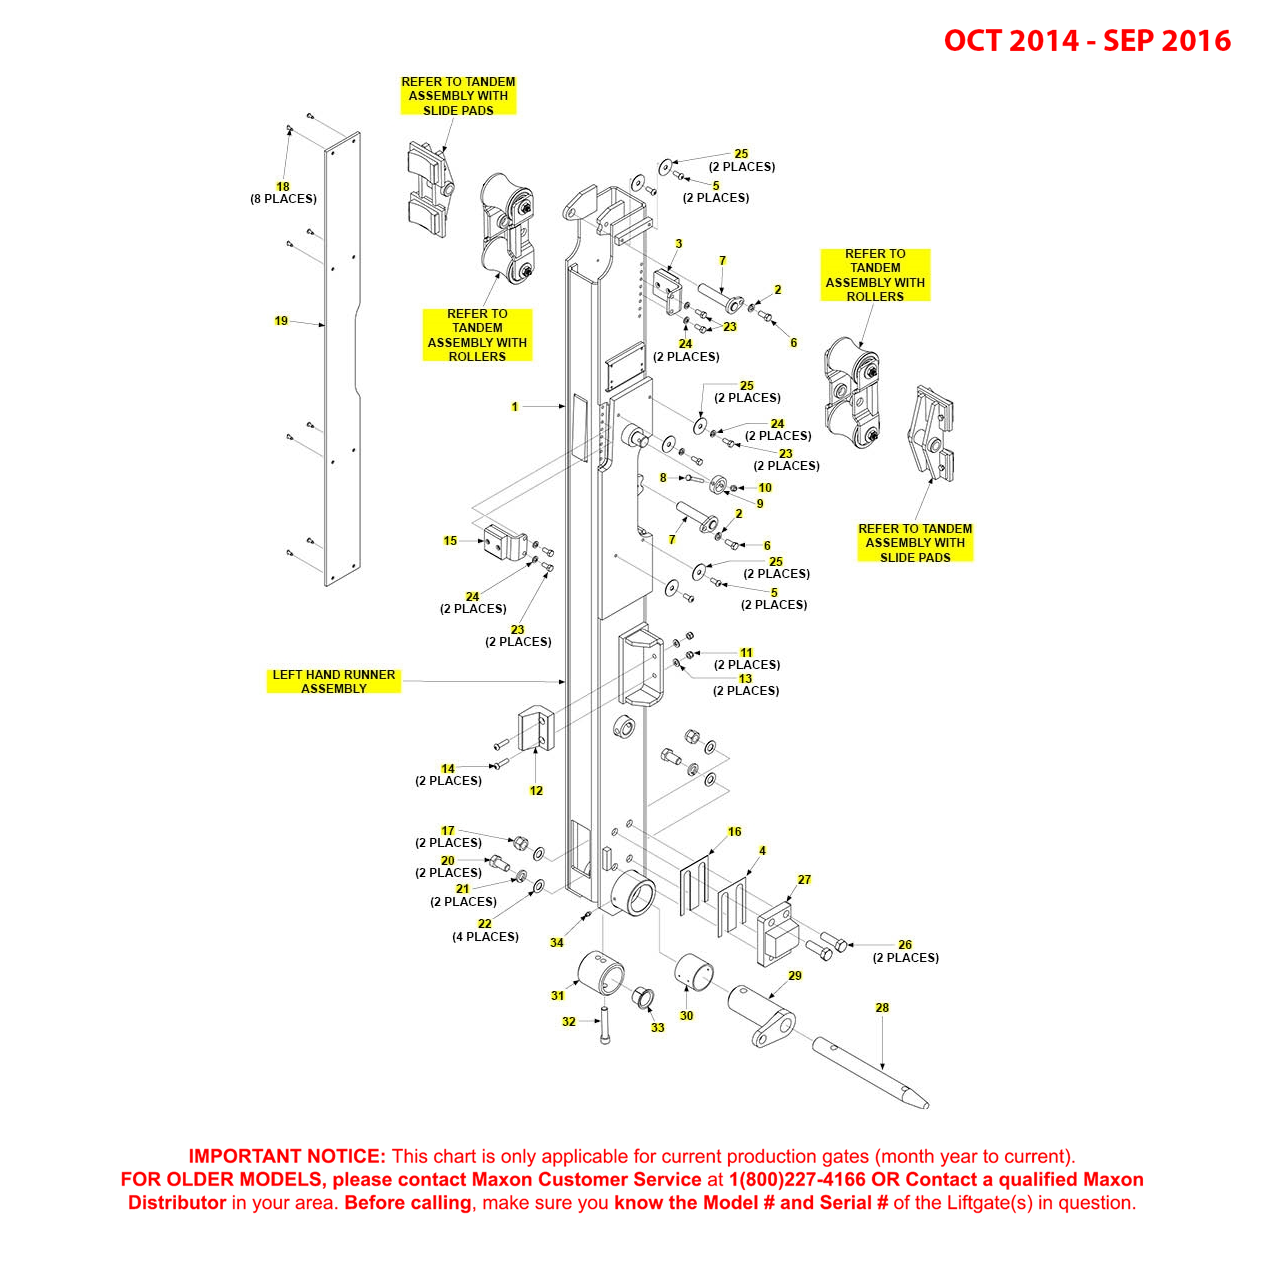 BMR (Oct 2014 - Sep 2016) Left Hand Runner Assembly Diagram